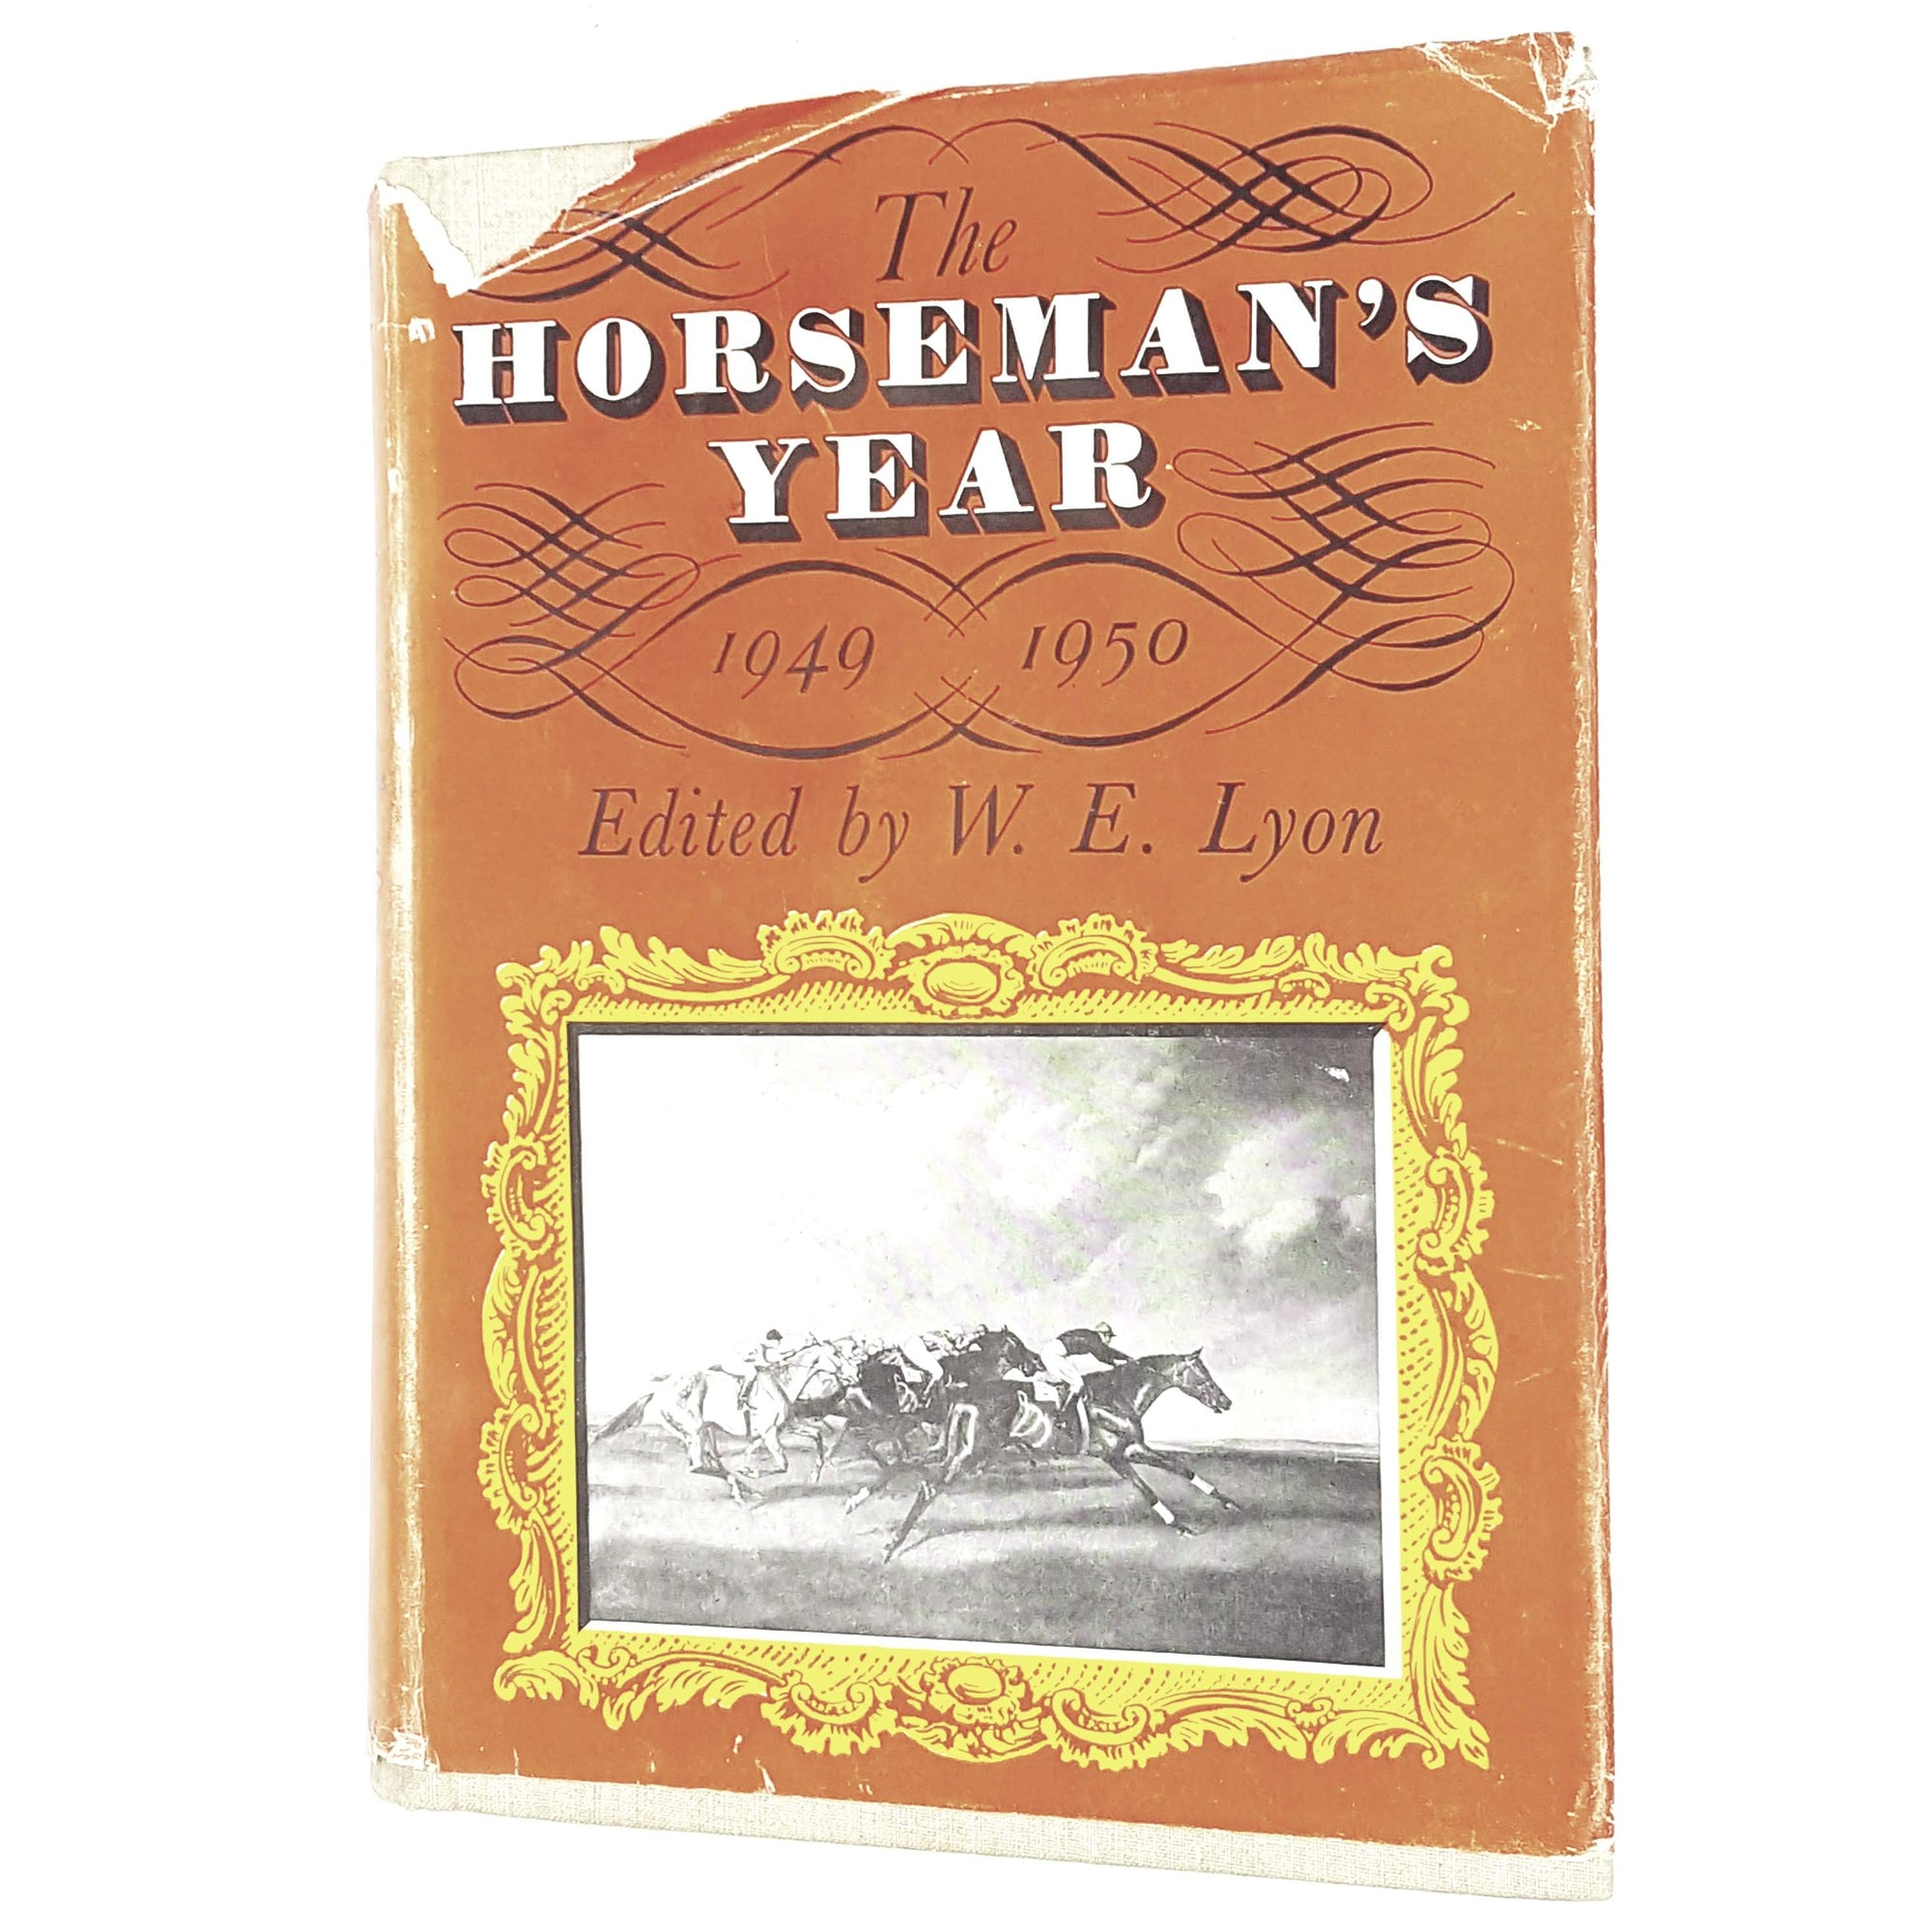 Illustrated The Horseman's Year 1949 - 1950